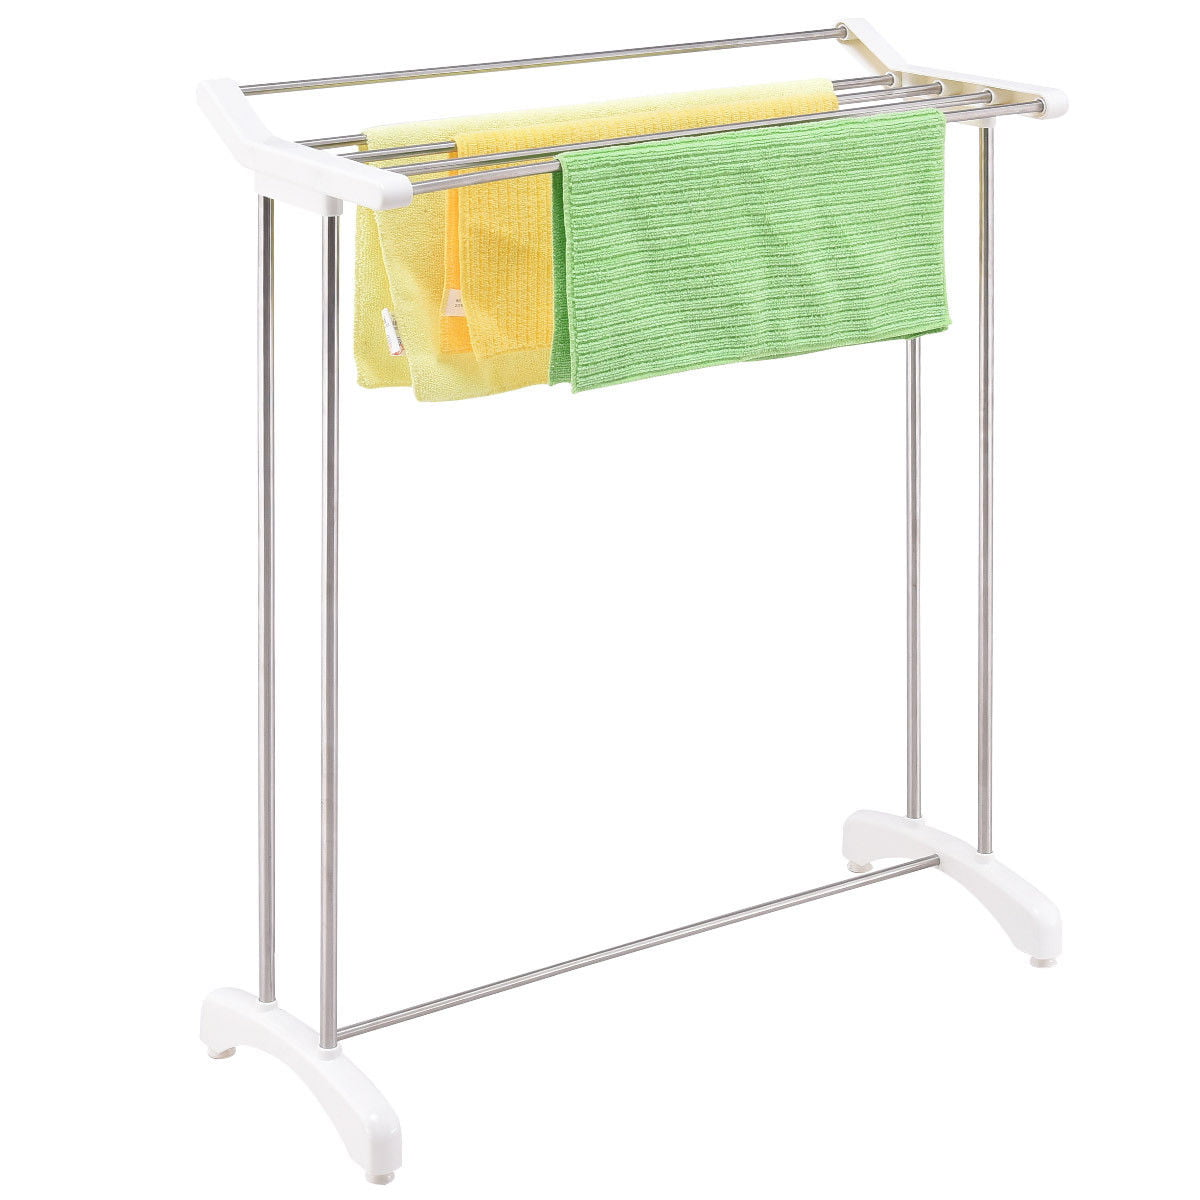 Gymax Free Standing Towel Rack Stand Stainless Steel Bathroom Organizer Hanger by Gymax